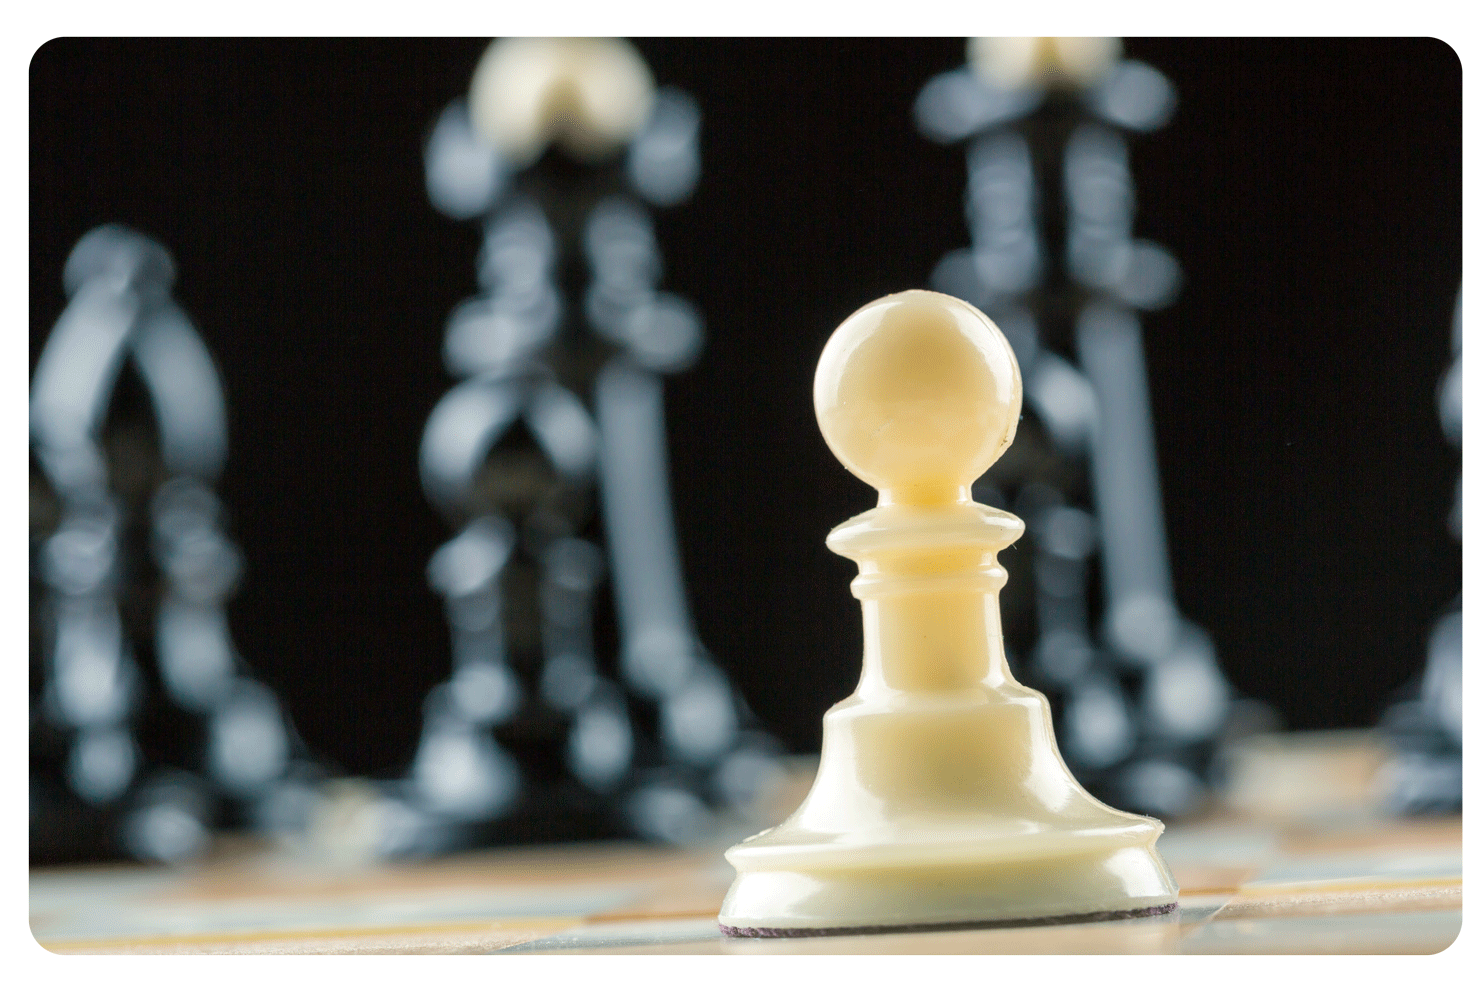 Pawn in Focus with Other Pieces in Soft Focus Behind It